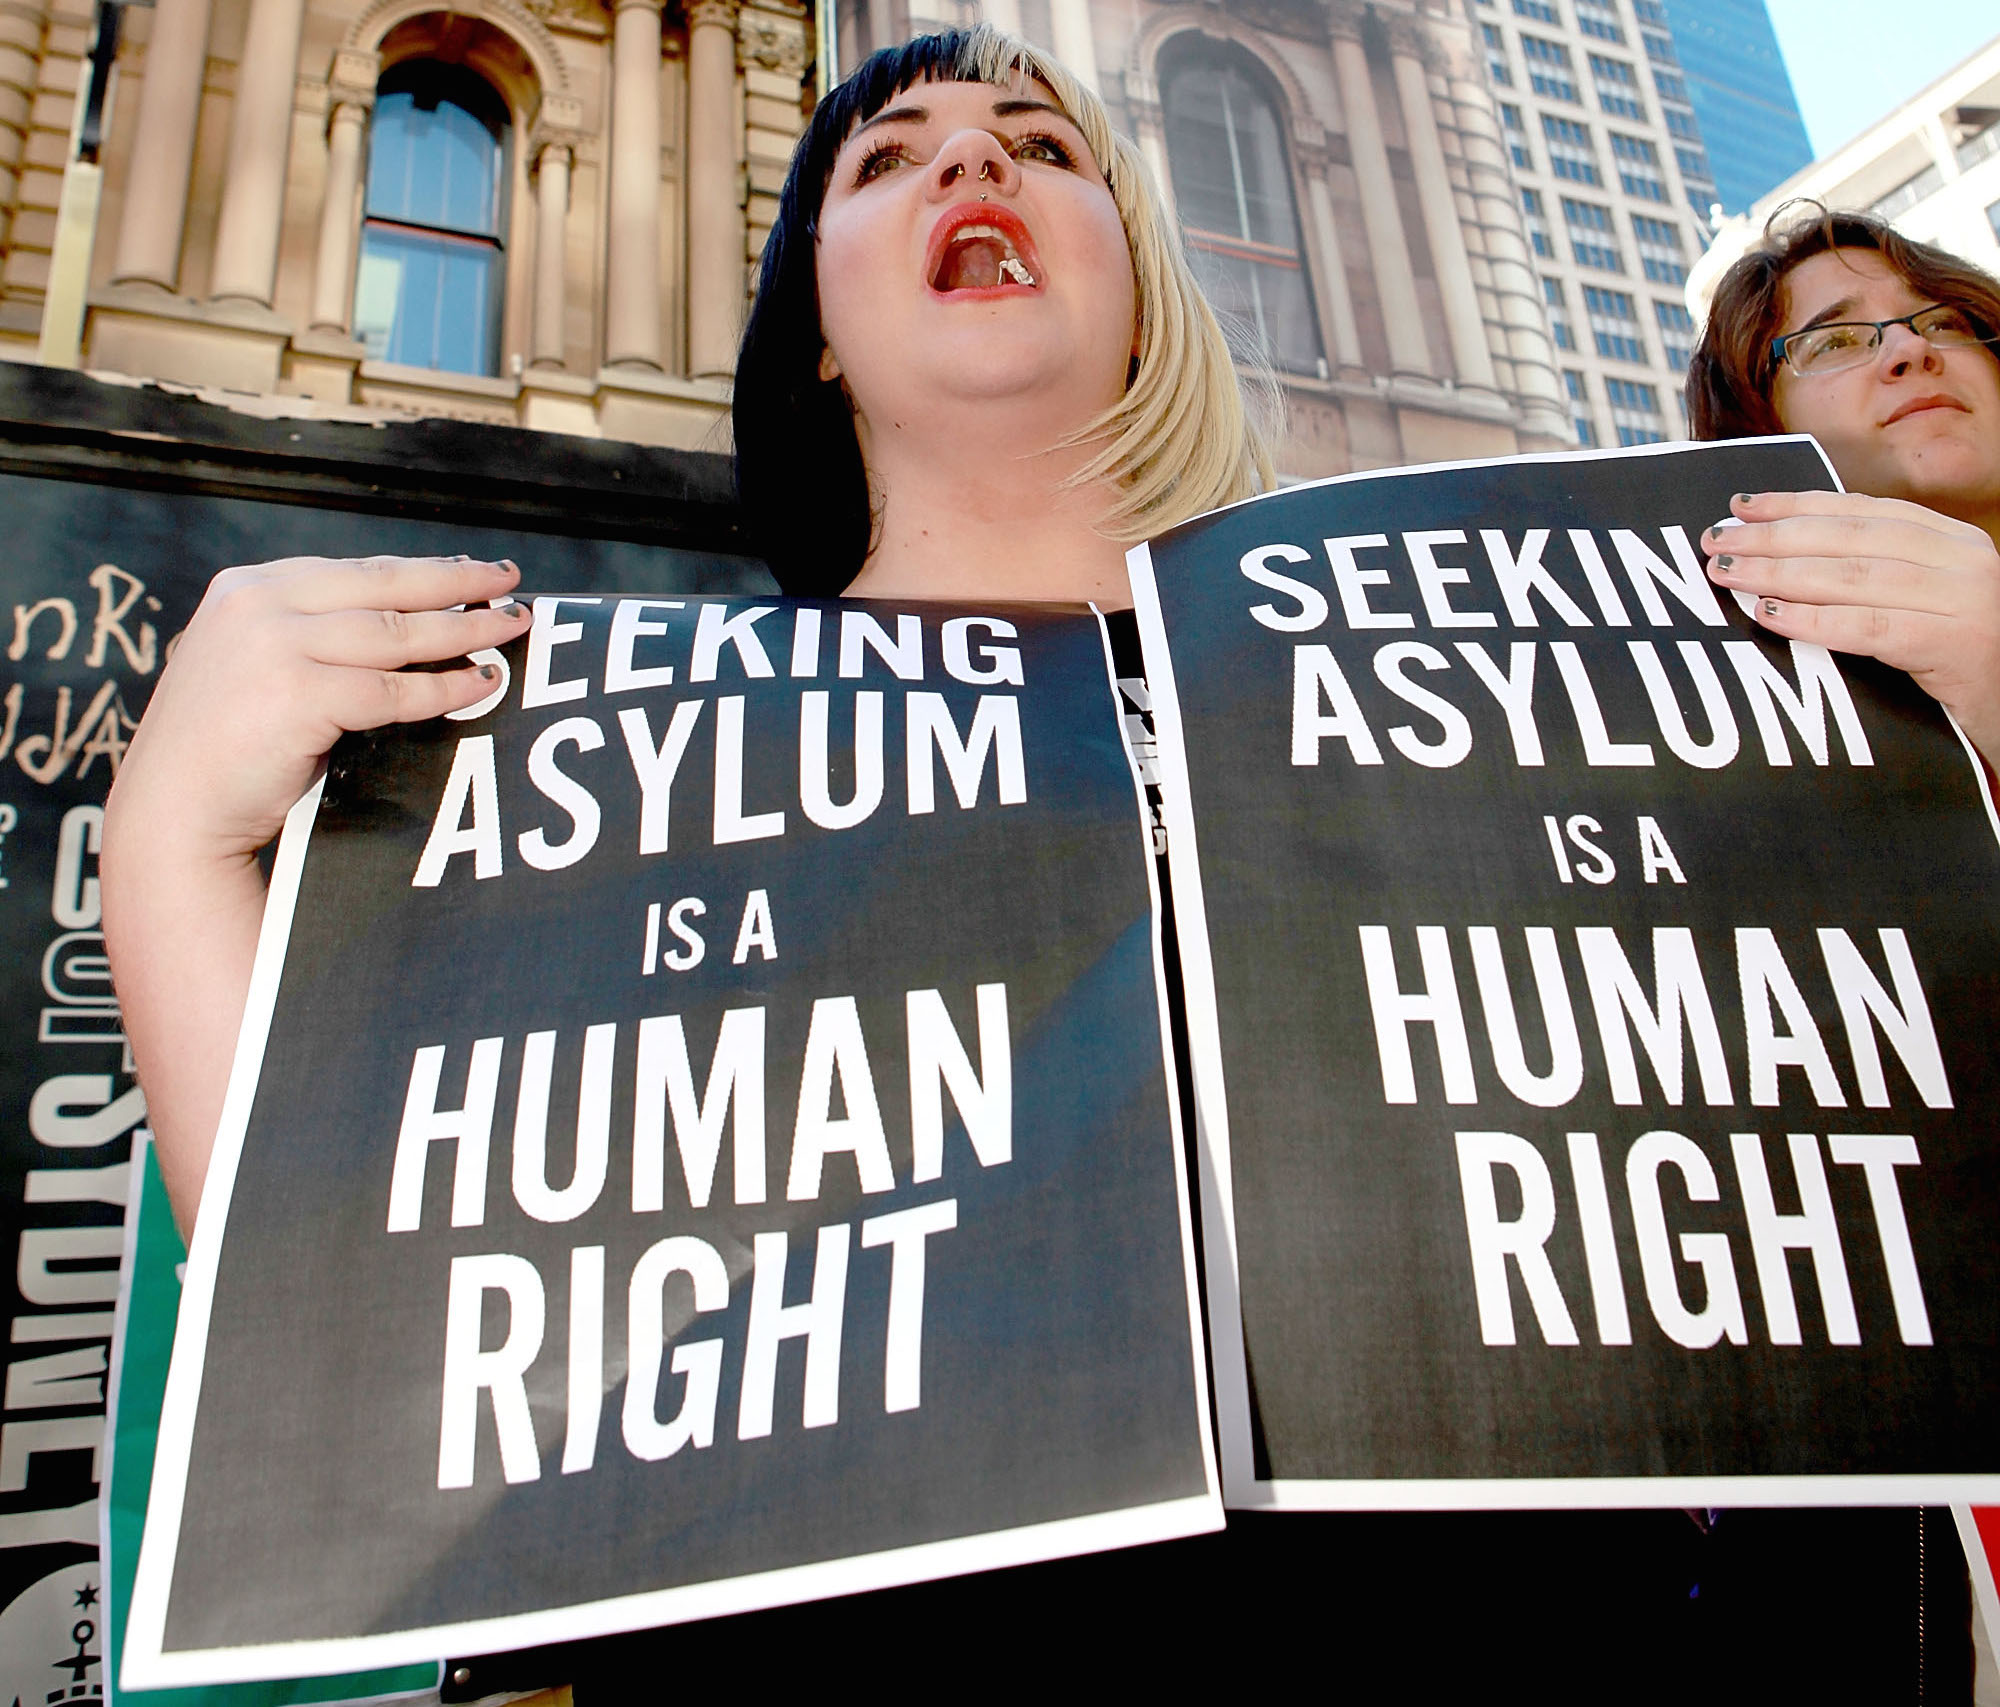 <> on July 20, 2013 in Sydney, Australia. The Australian government yesterday announced all future boat arrivals by asylum seekers will be sent to Papua New Guinea for processing and settlement. The announcement marks a major shift in policy direction by the centre-left Australian Labor Party government.